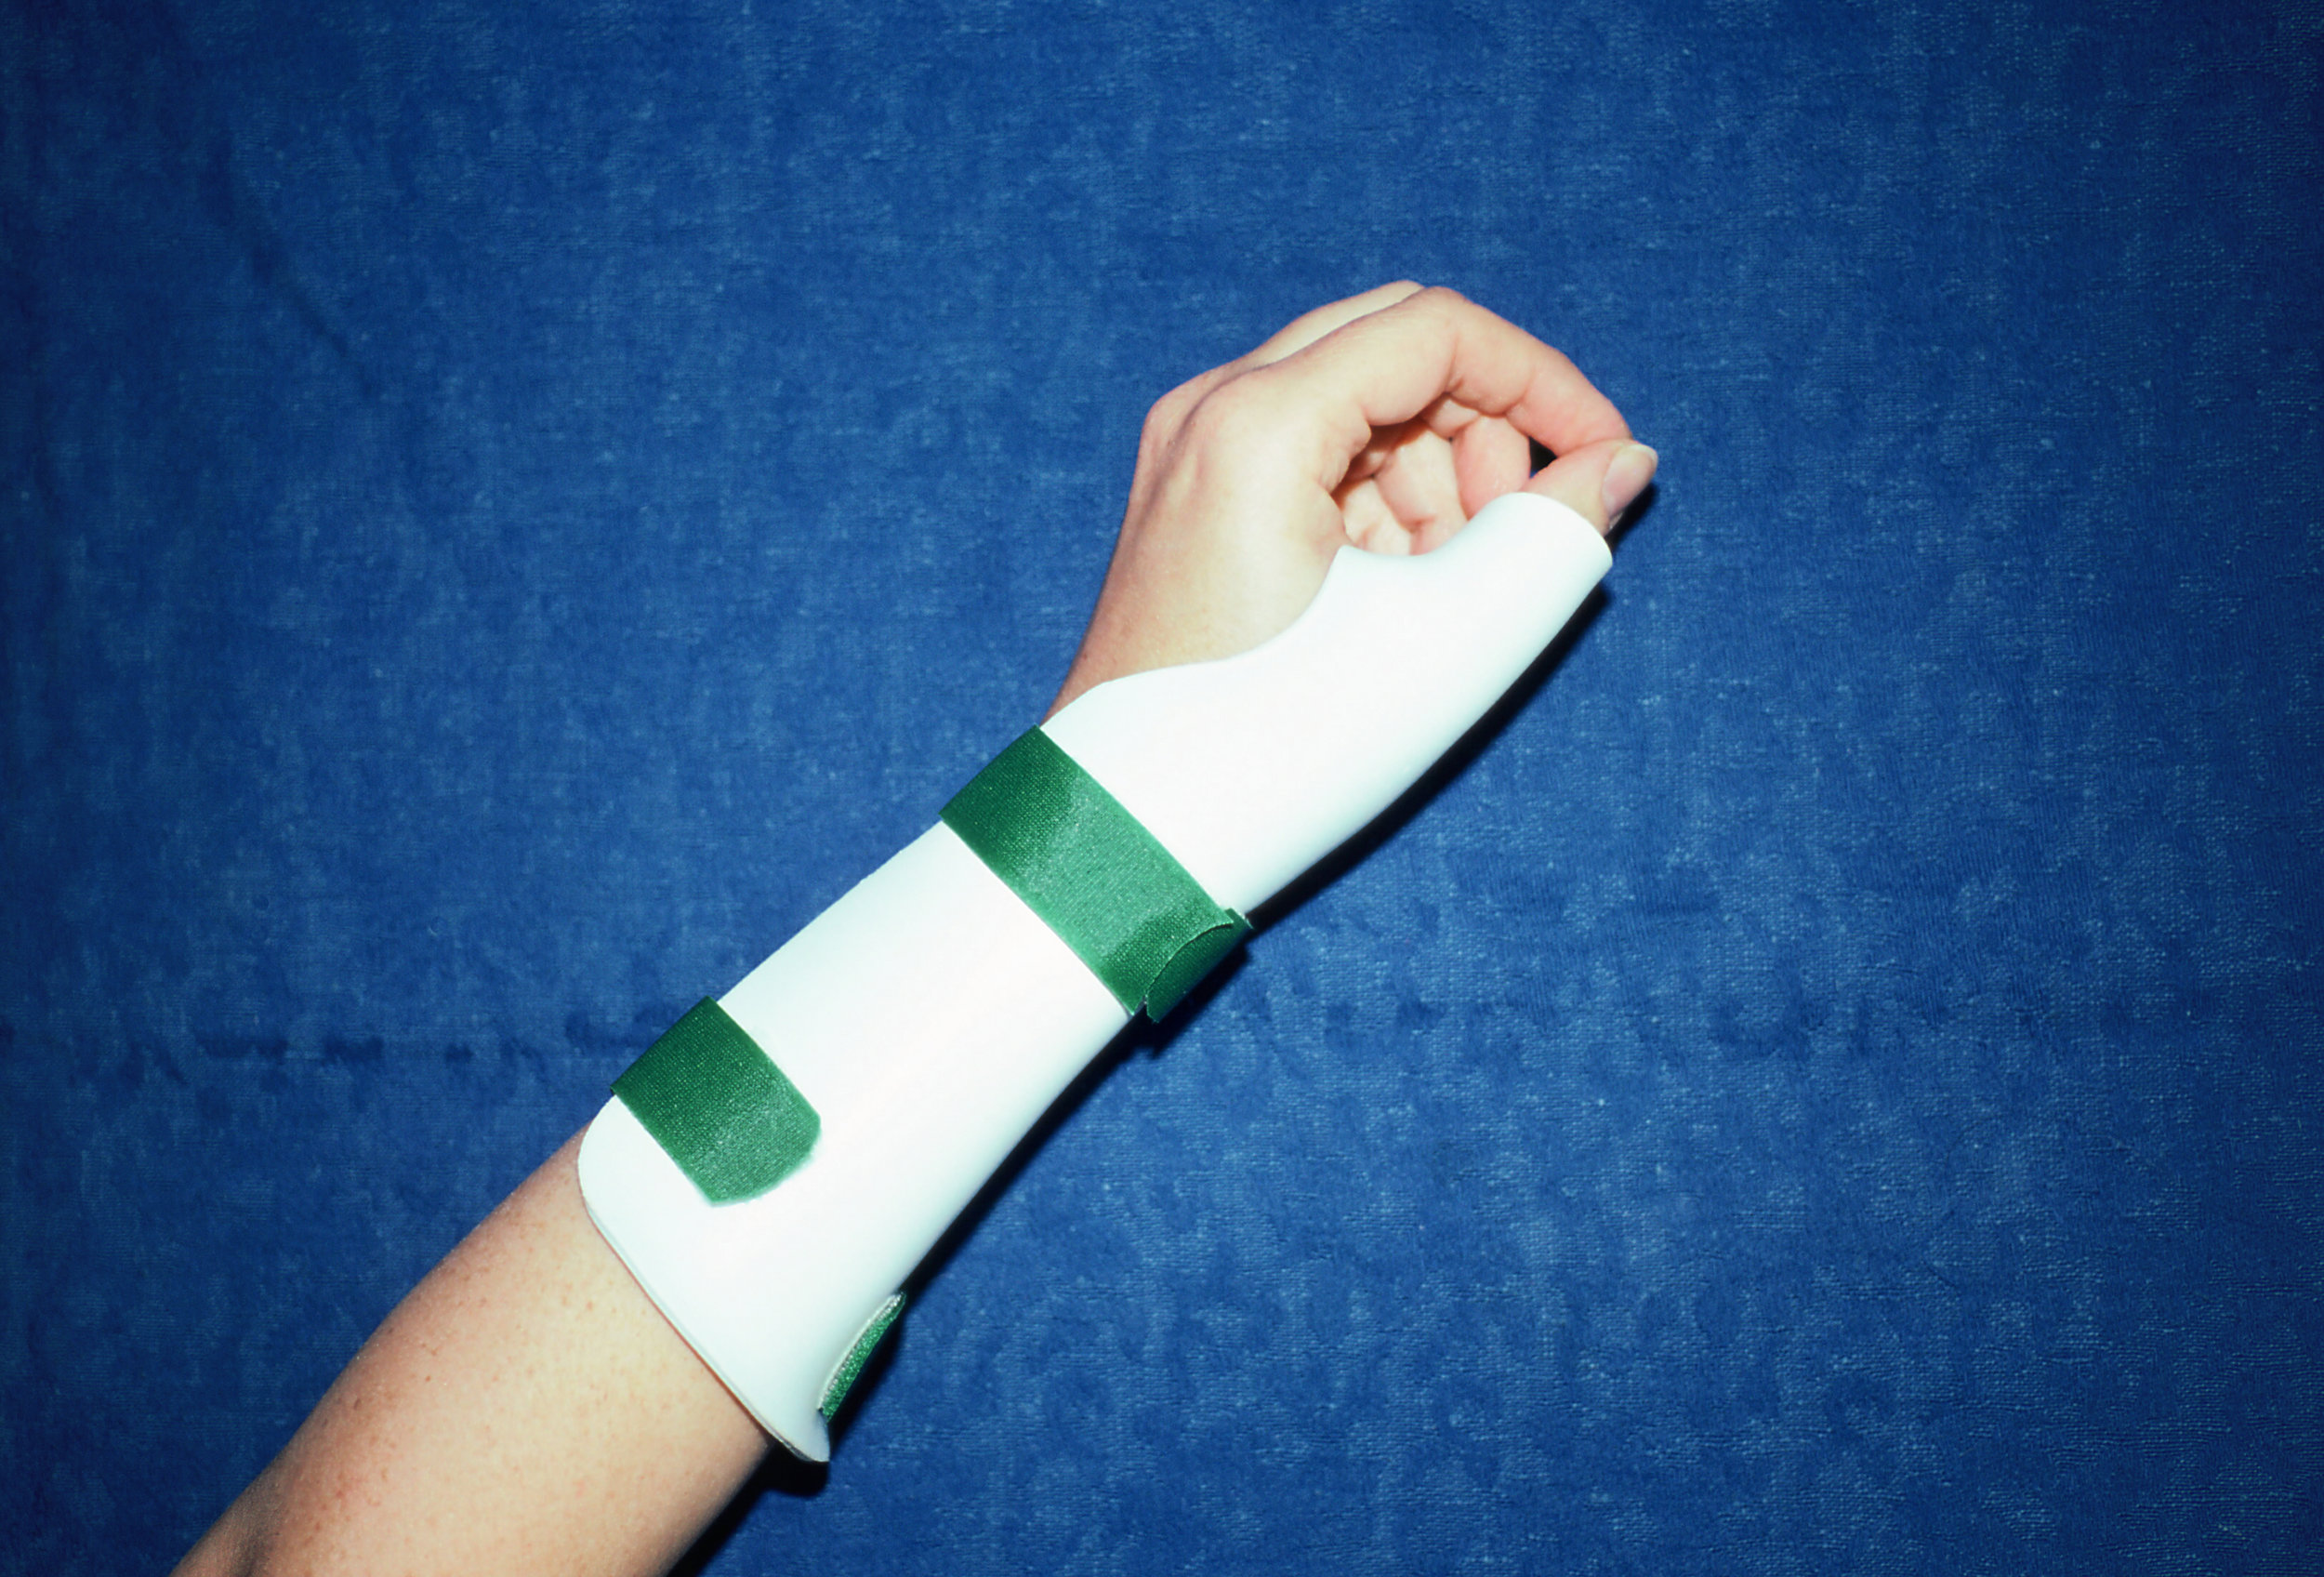 forearmthumbspica.jpg